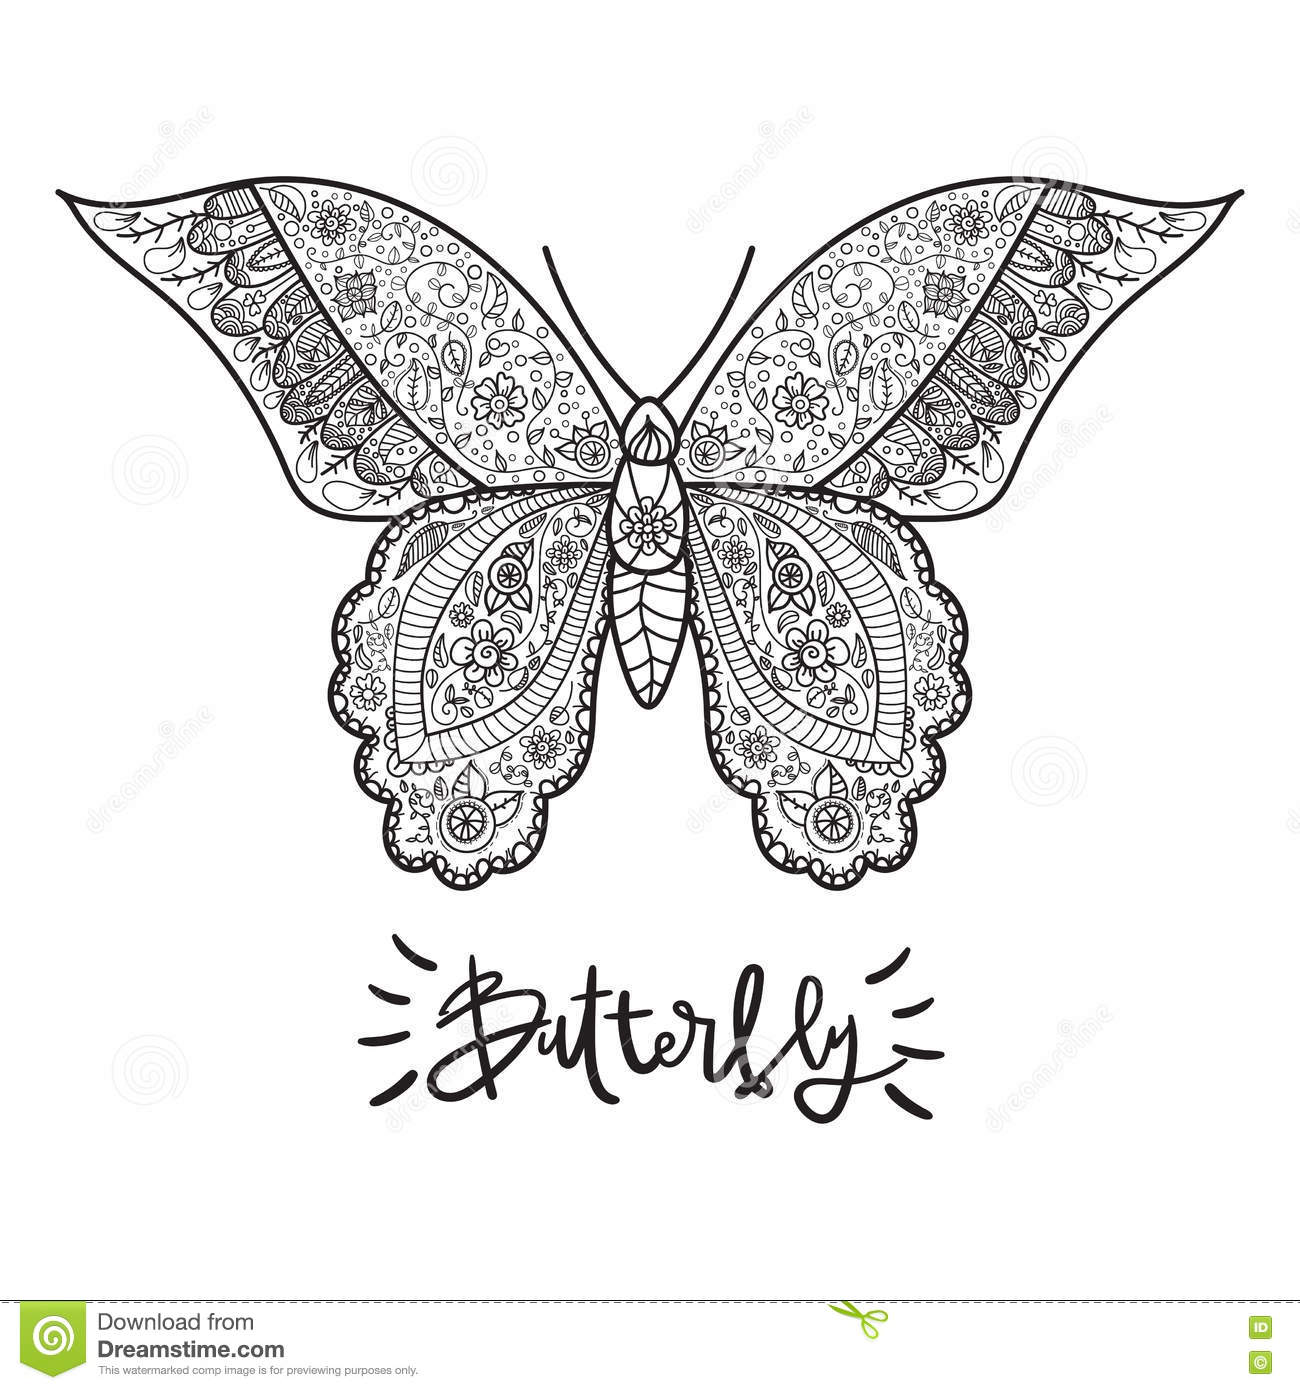 Shutterfly elaborate adult butterfly coloring pages for Elaborate coloring pages